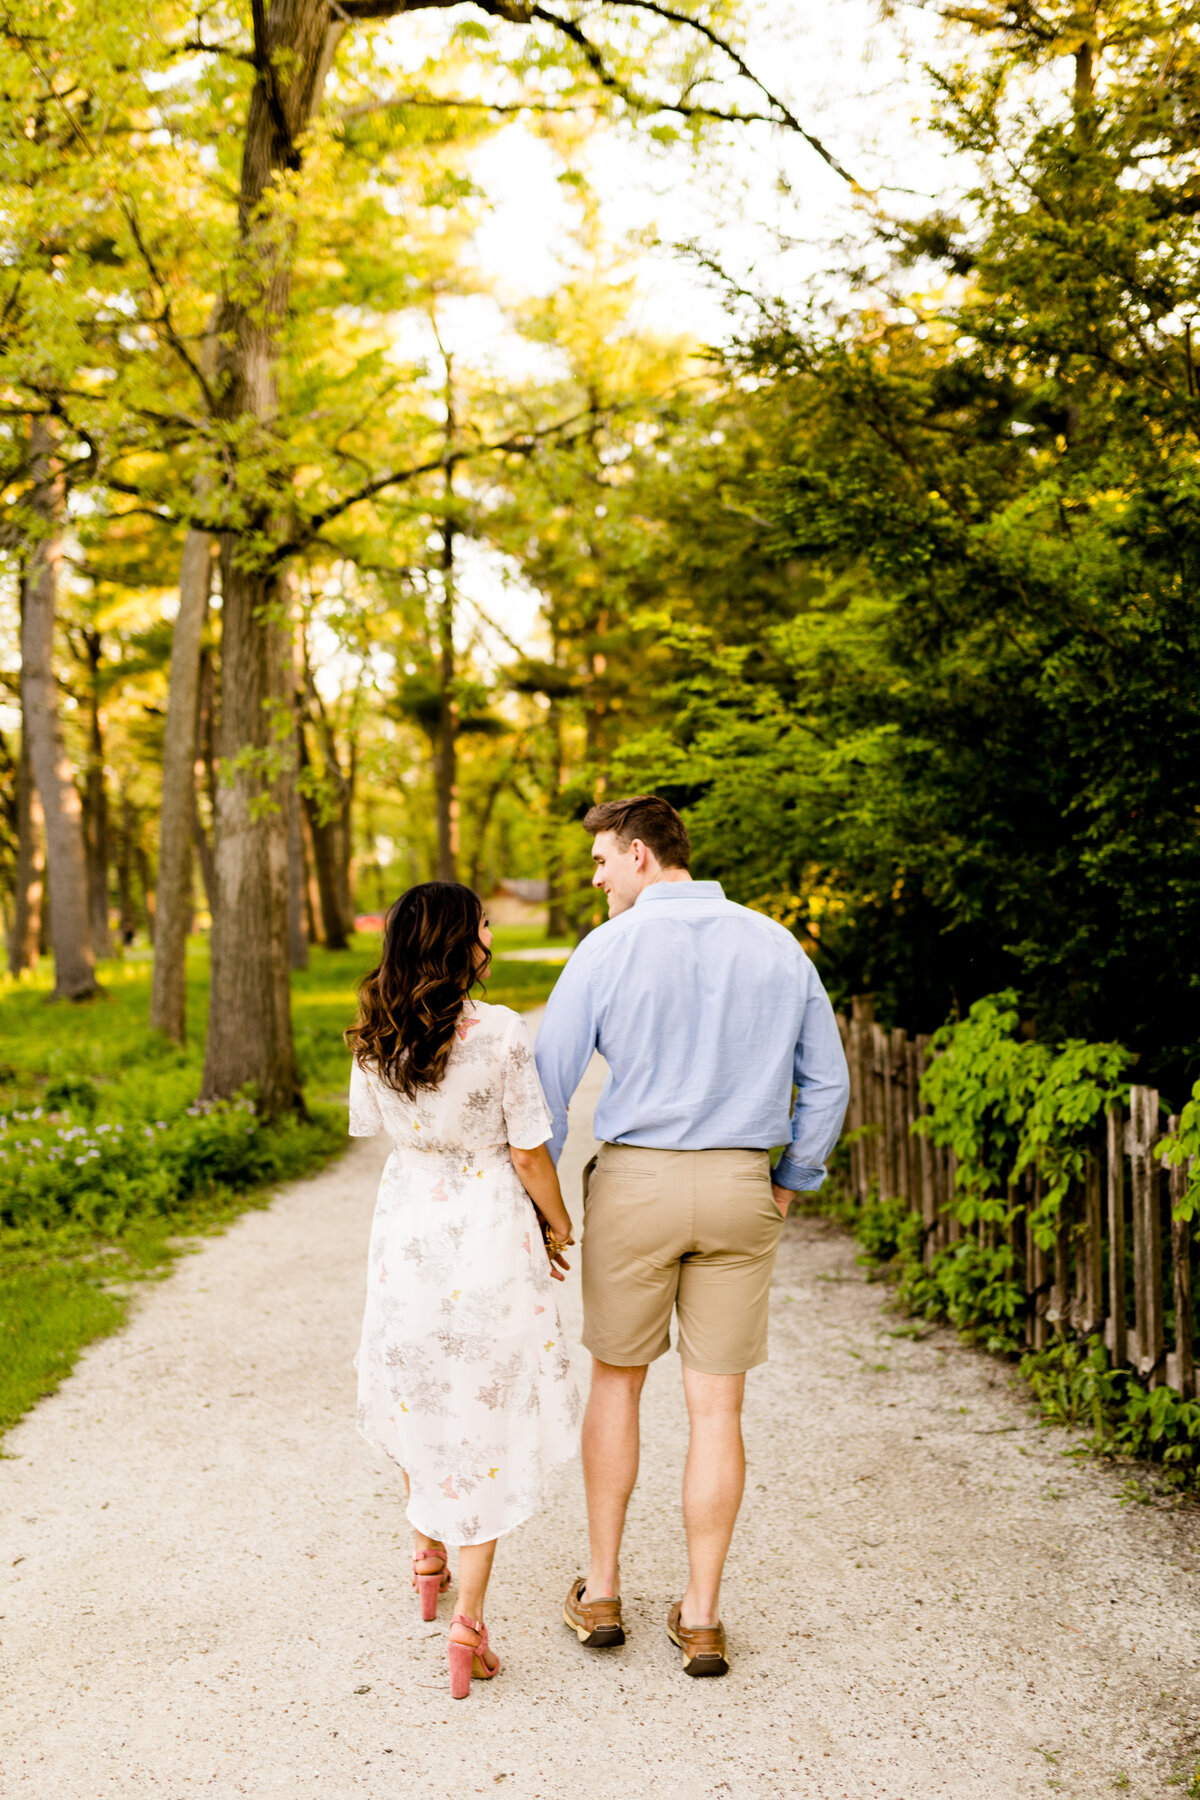 Caitlin and Luke Photography Wedding Engagement Luxury Illinois Destination Colorful Bright Joyful Cheerful Photographer 306